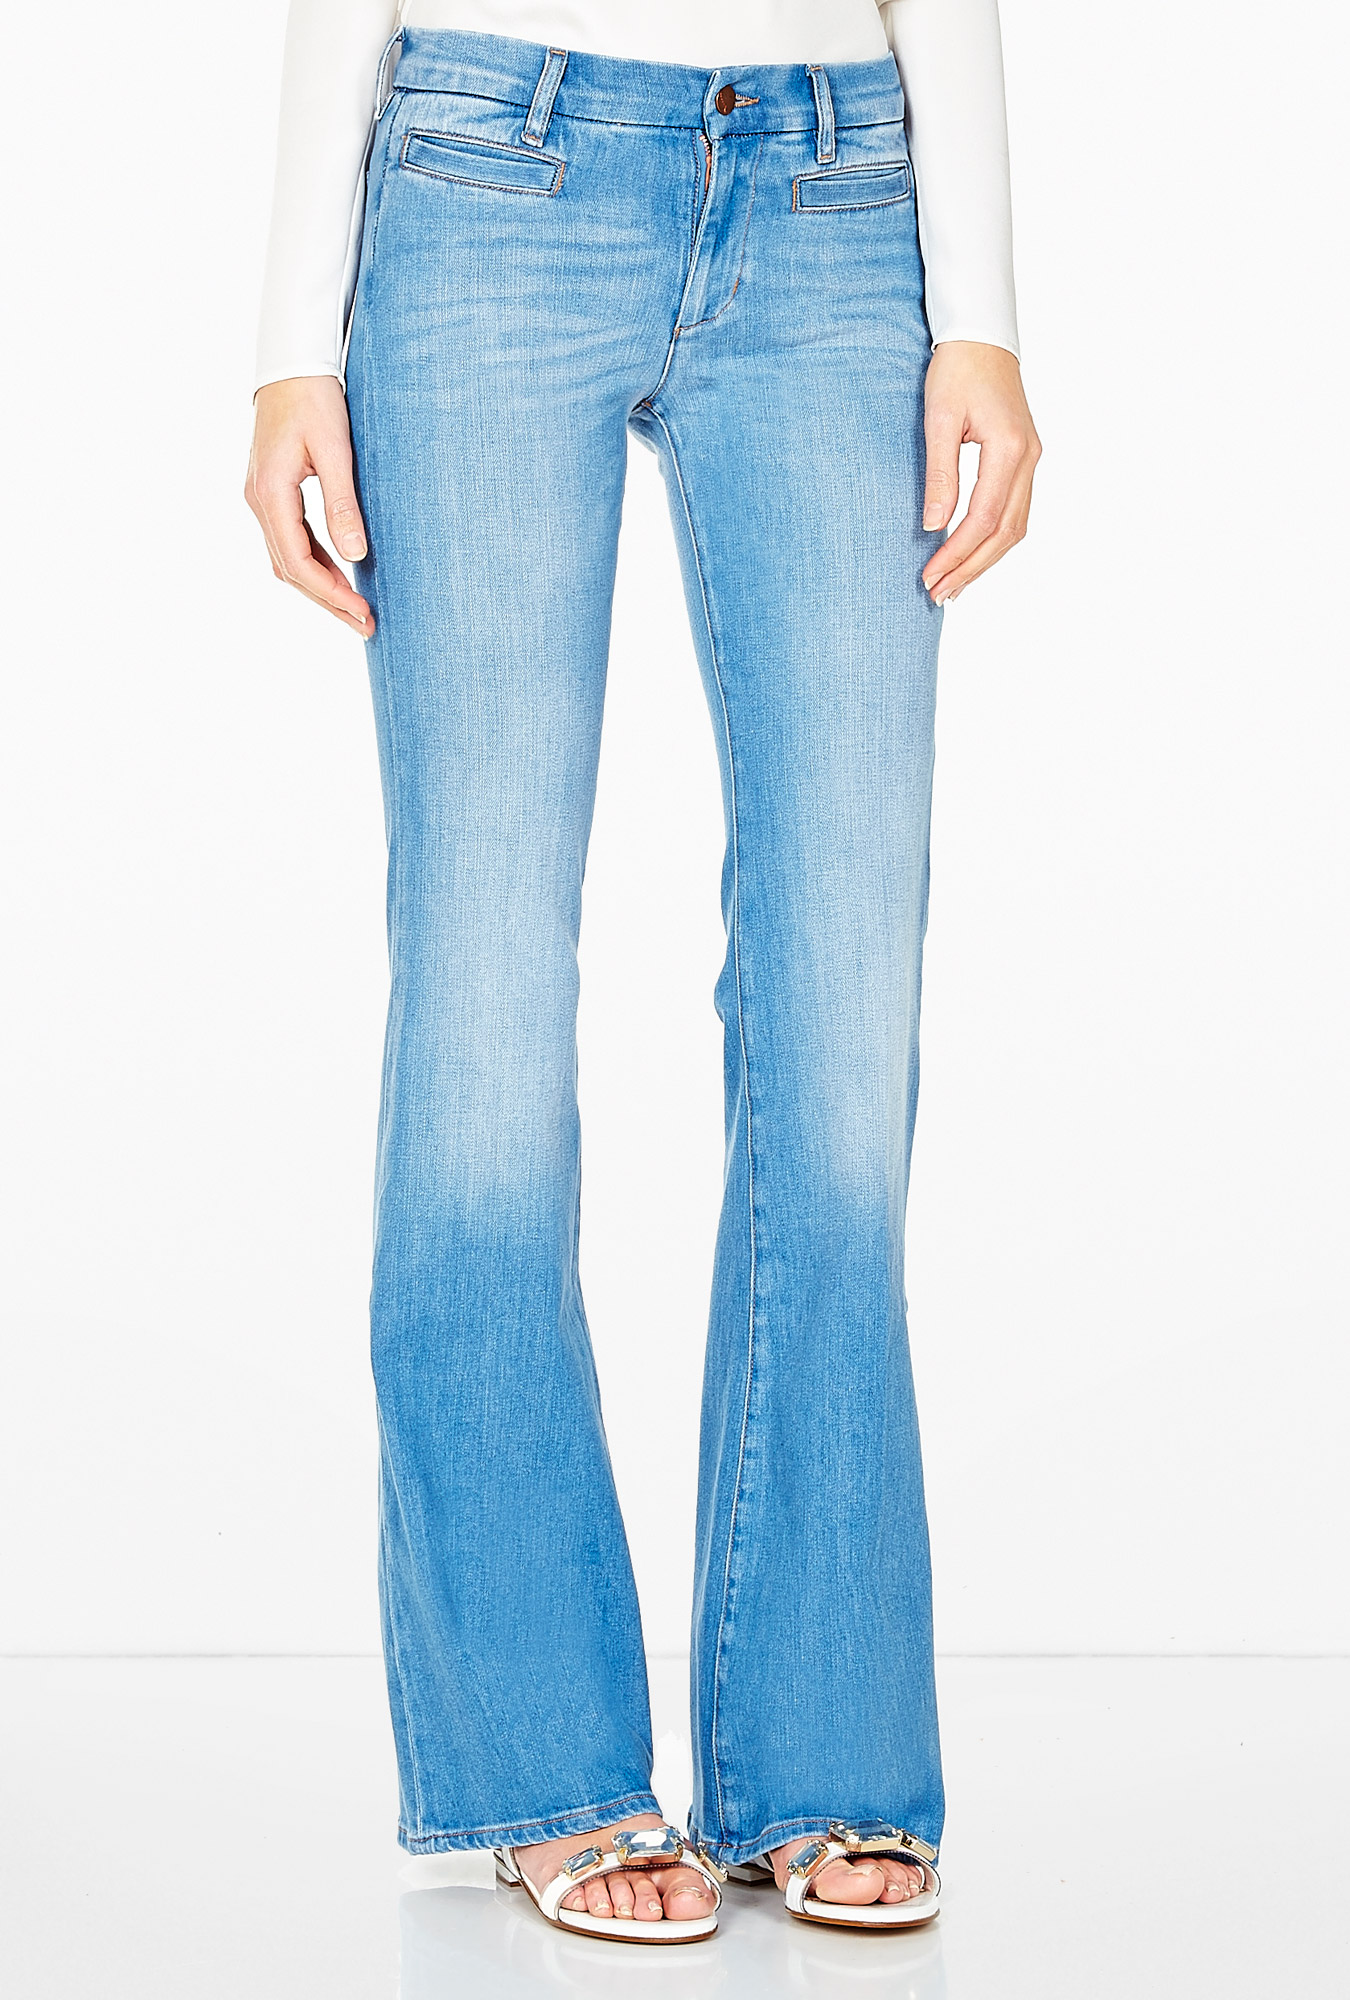 MiH Jeans | The Marrakesh  by MiH Jeans